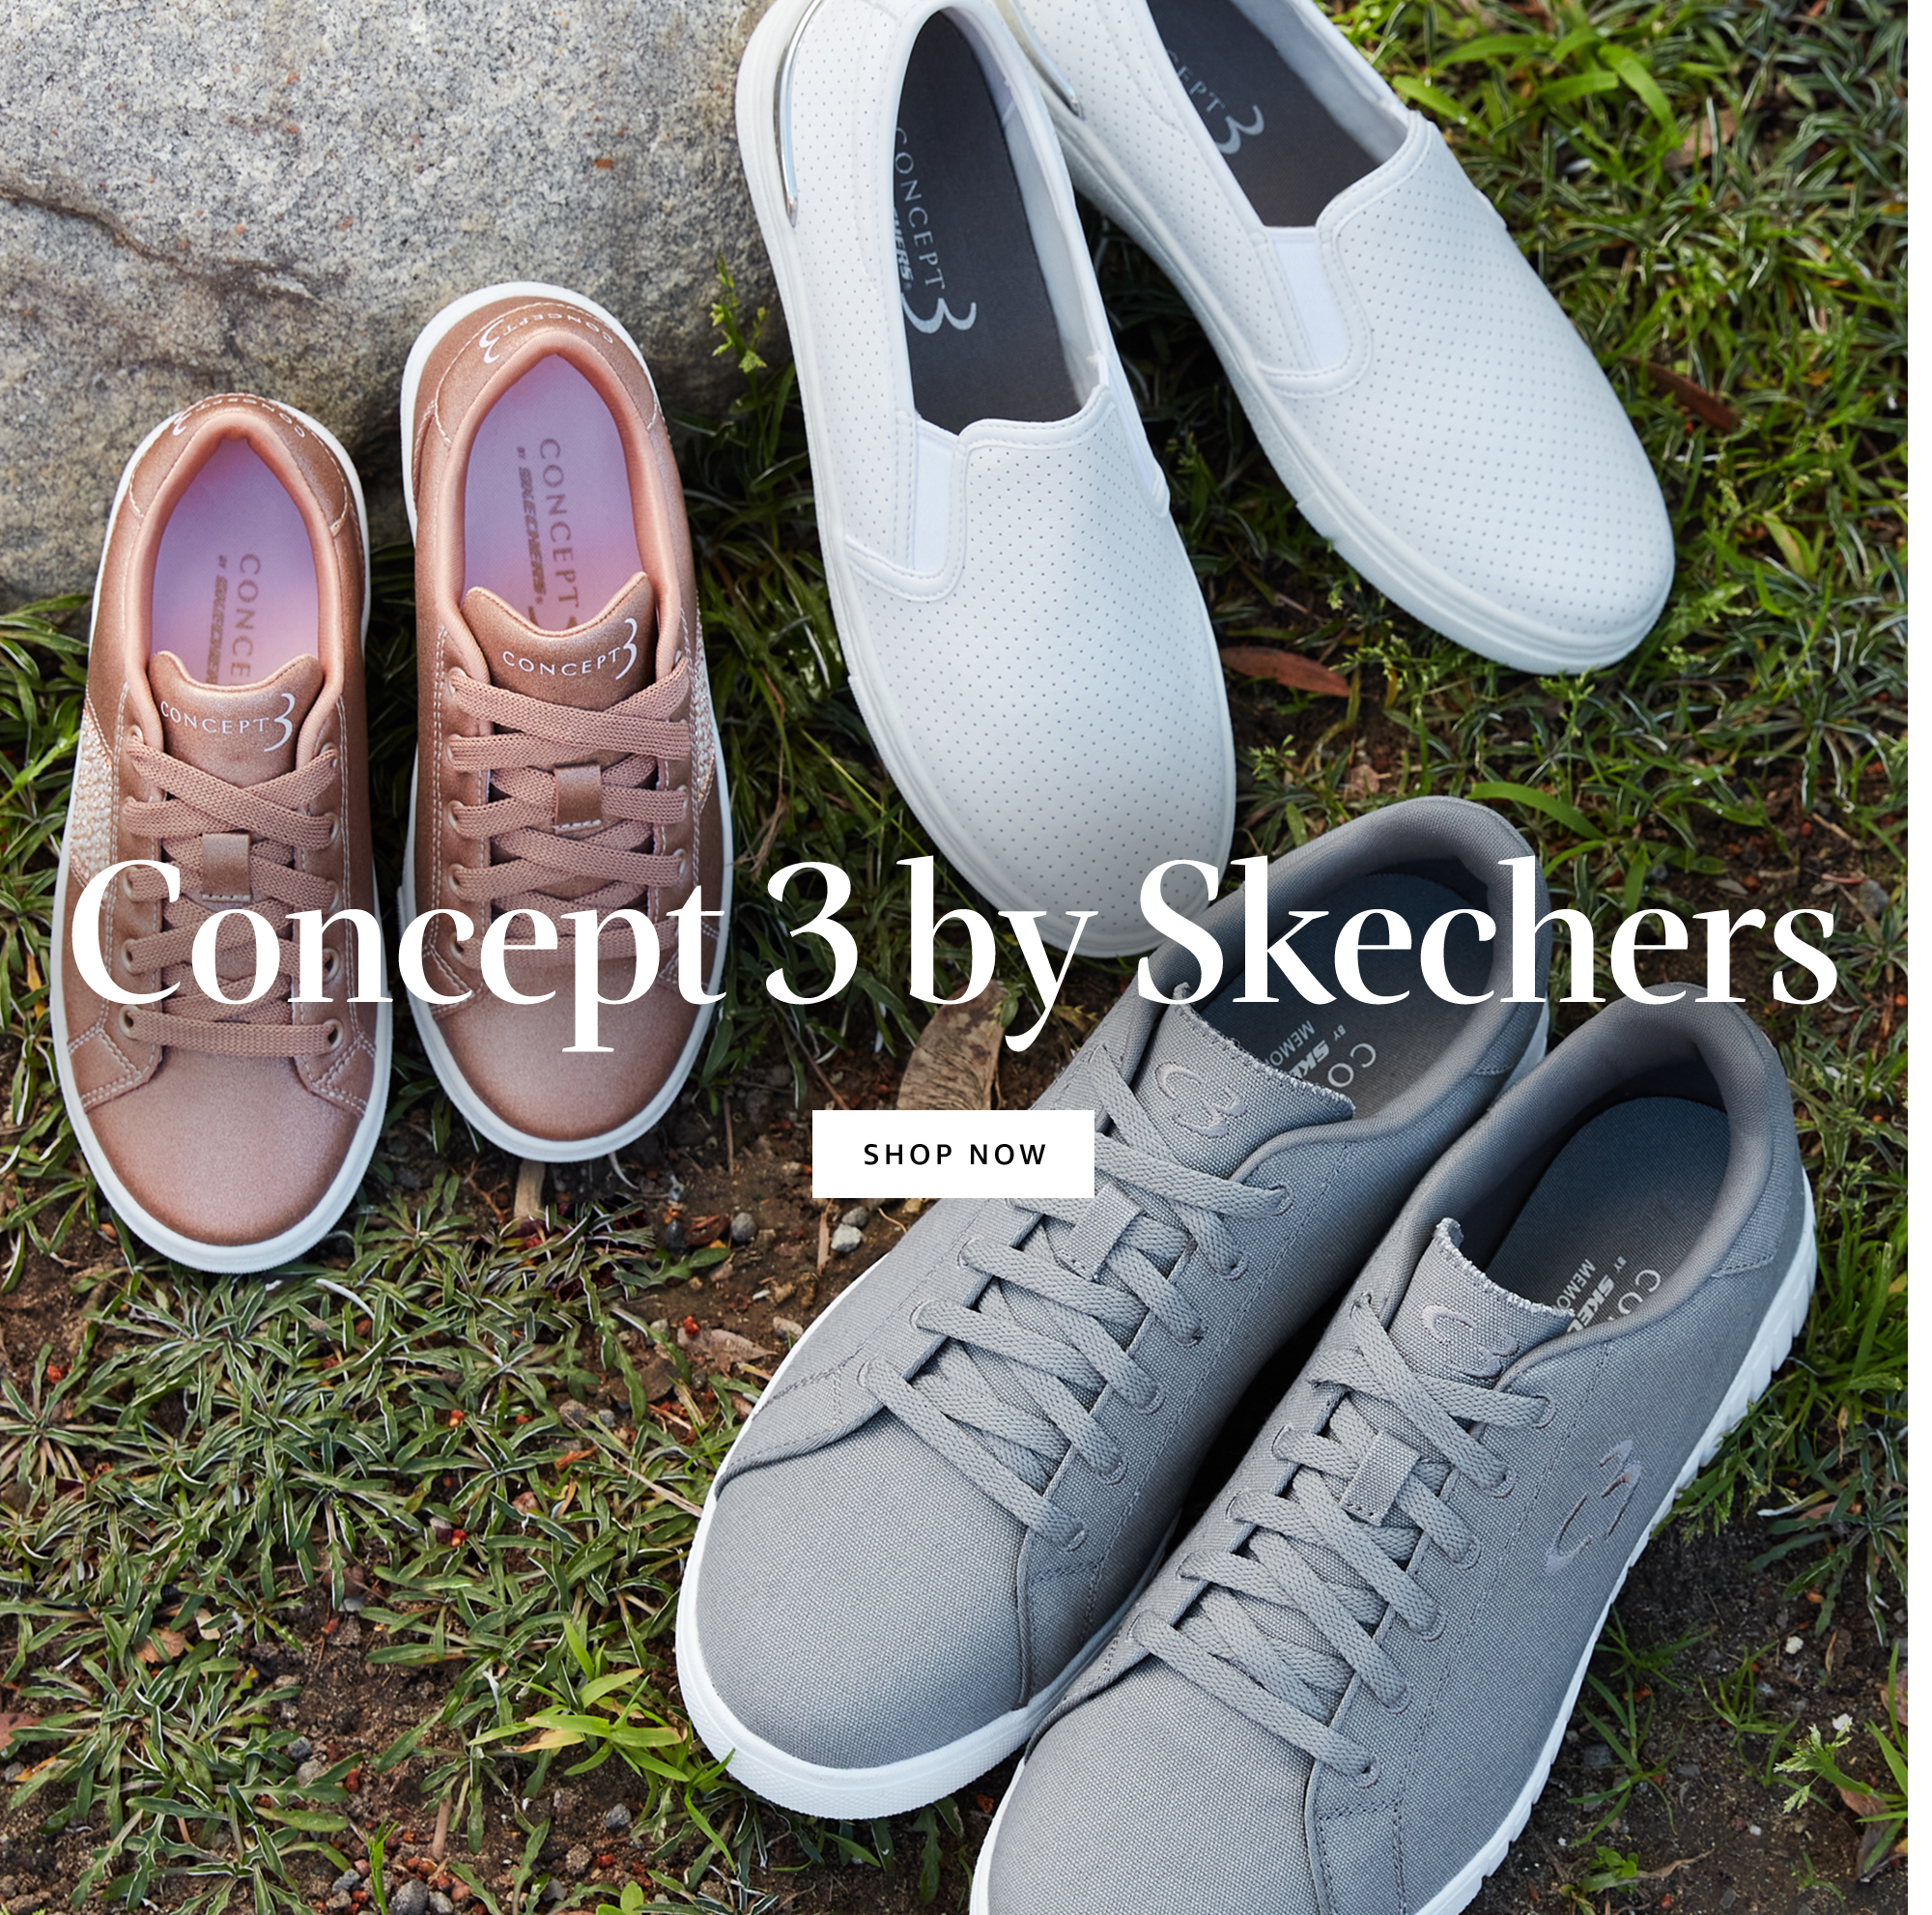 Concept 3 by Skechers